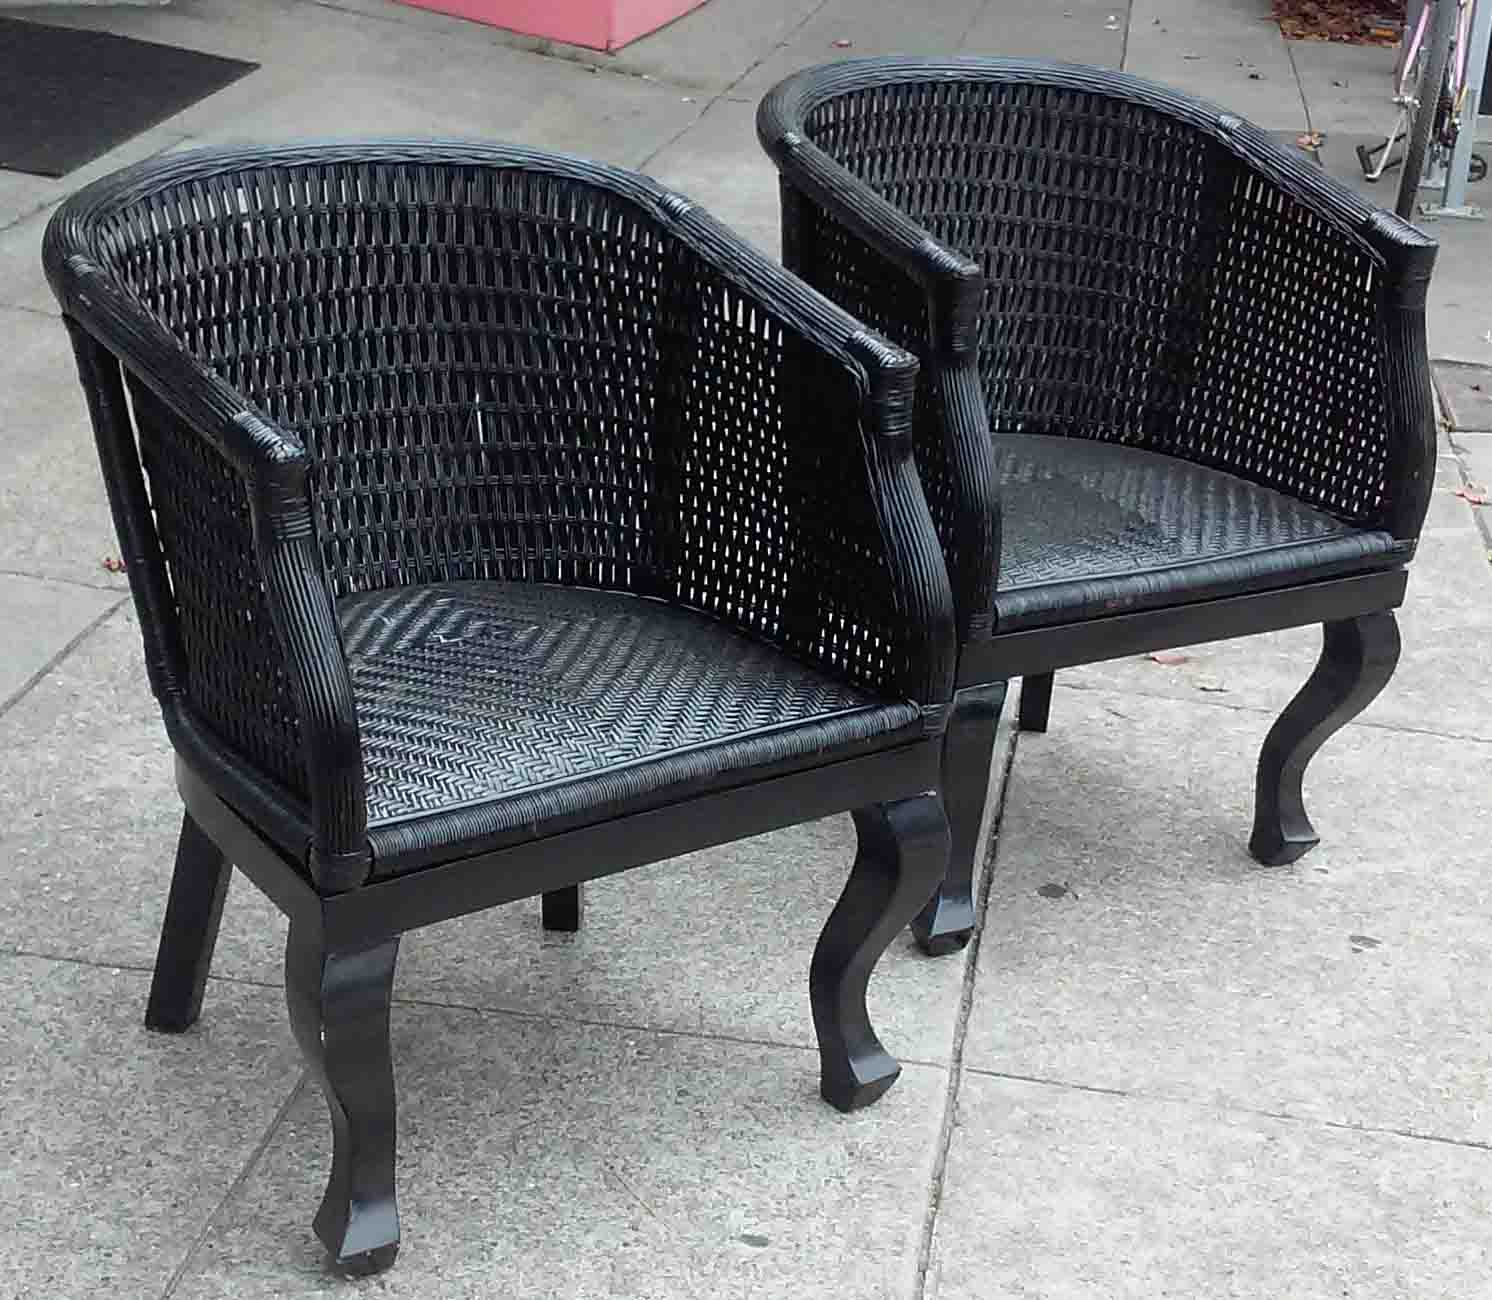 Black Patio Chairs Uhuru Furniture And Collectibles Sold Black Wicker Patio